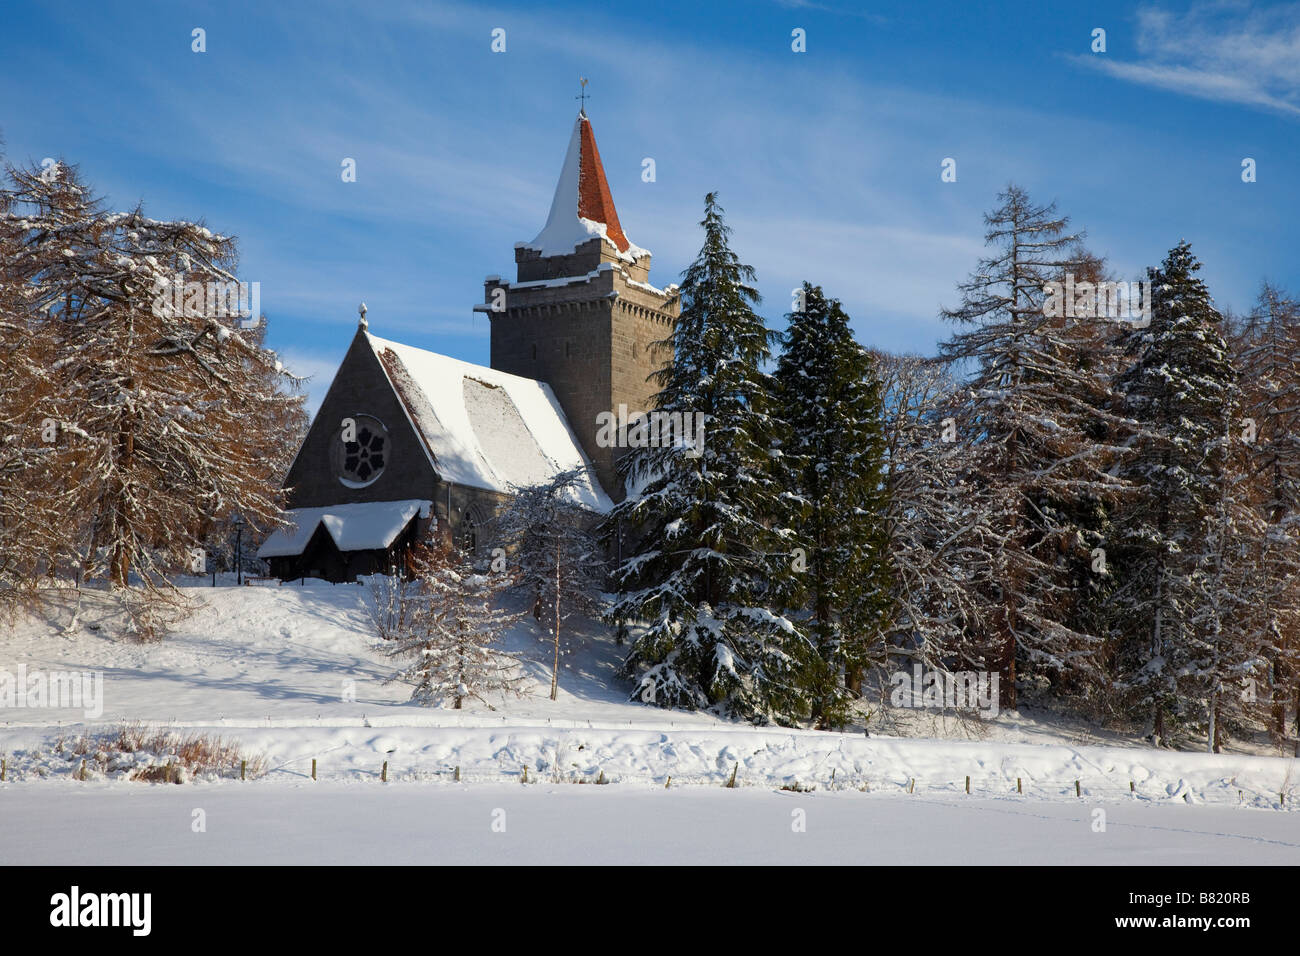 Winter Christmas Card Scene of Crathie Kirk or Church, in the Scottish village near Balmoral, Royal Deeside., Cairngorms - Stock Image